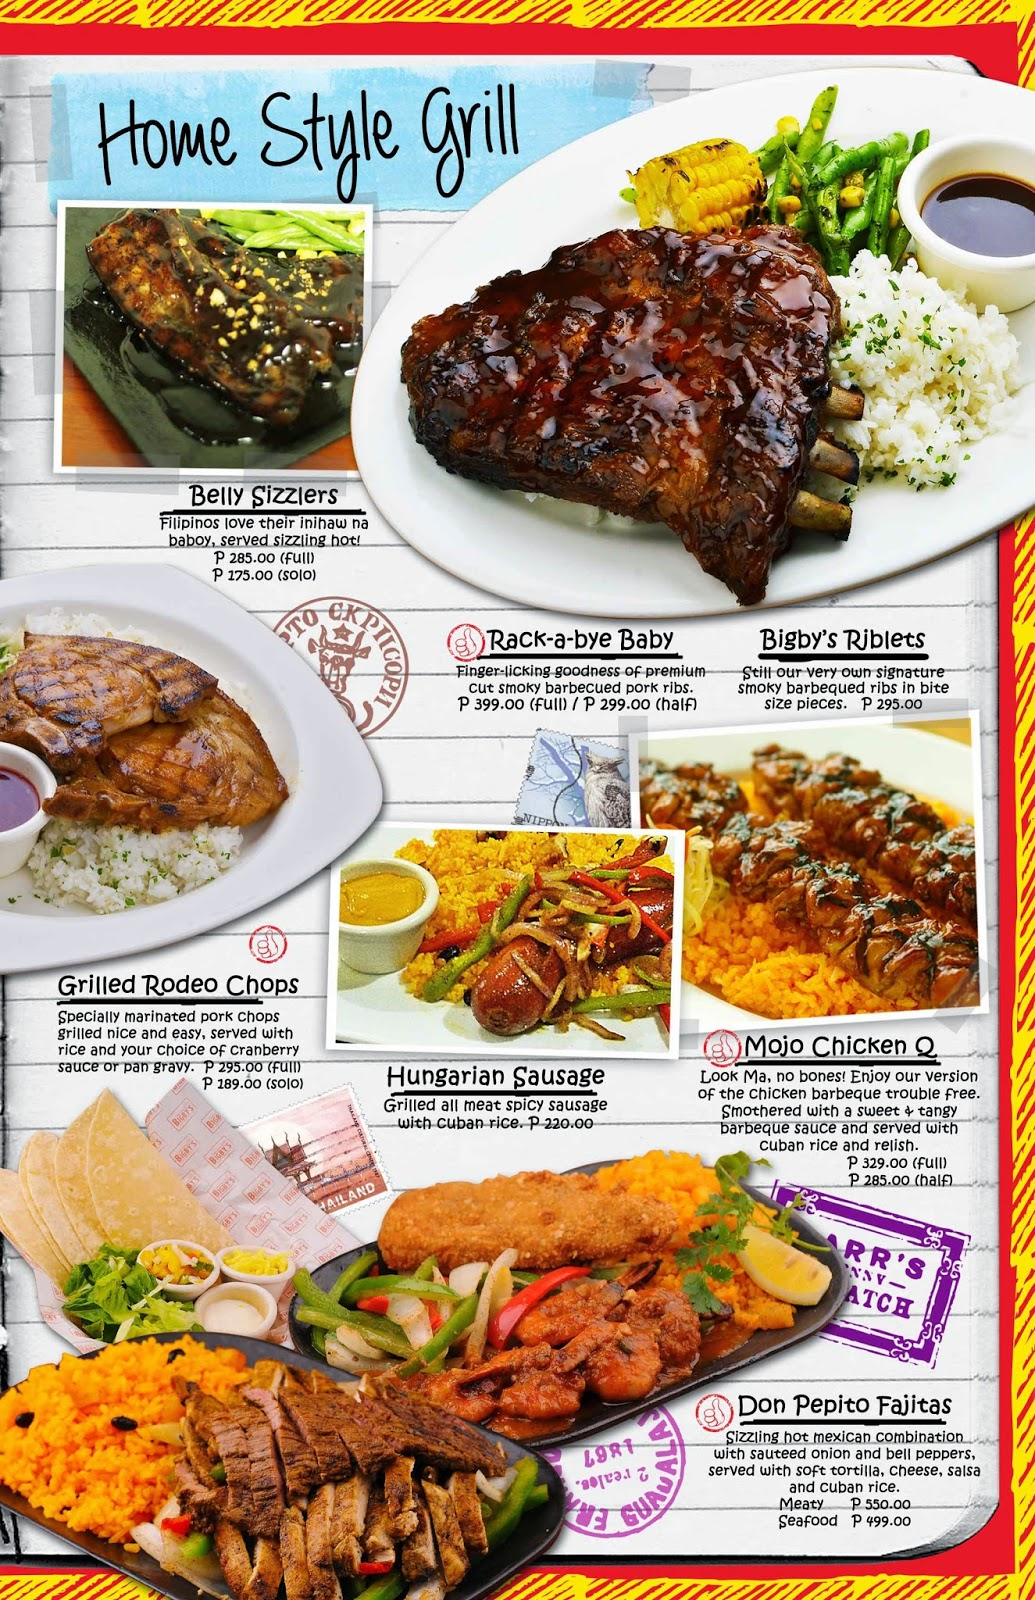 yummy goes to davao 3 cheap and delicious places to eat in davao city, philippines by greg peter  candelario  eat and has been for a long time go check it out.